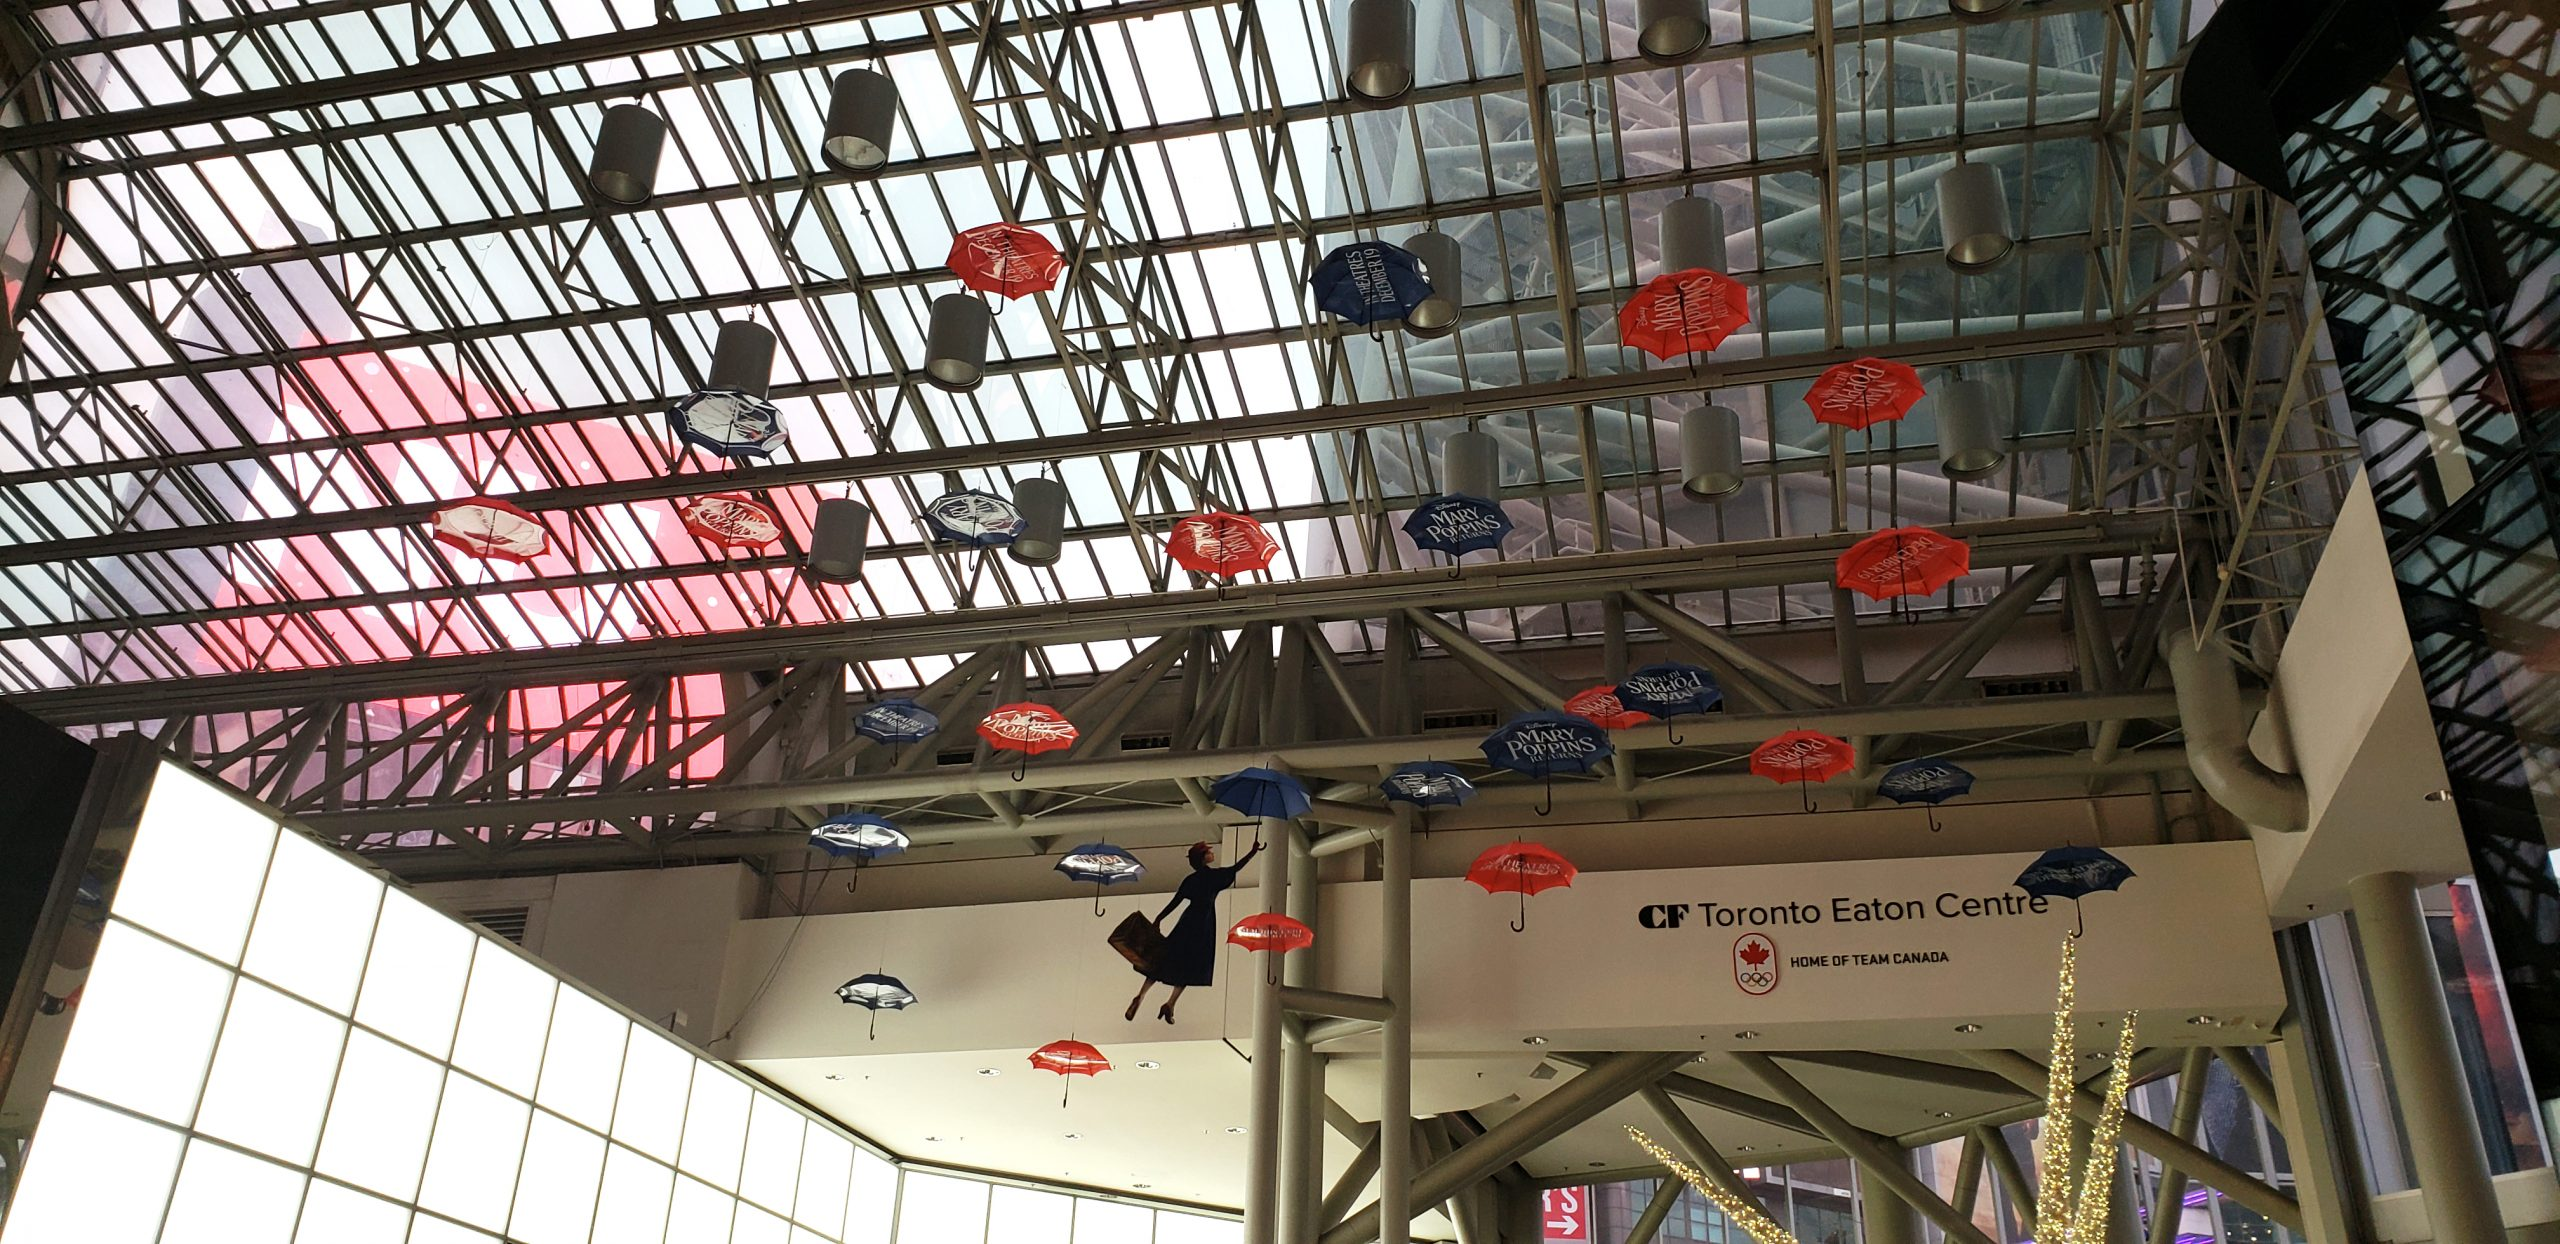 Media Resources installed these promotional elements for Mary Poppins Returns in Toronto's Eaton Centre